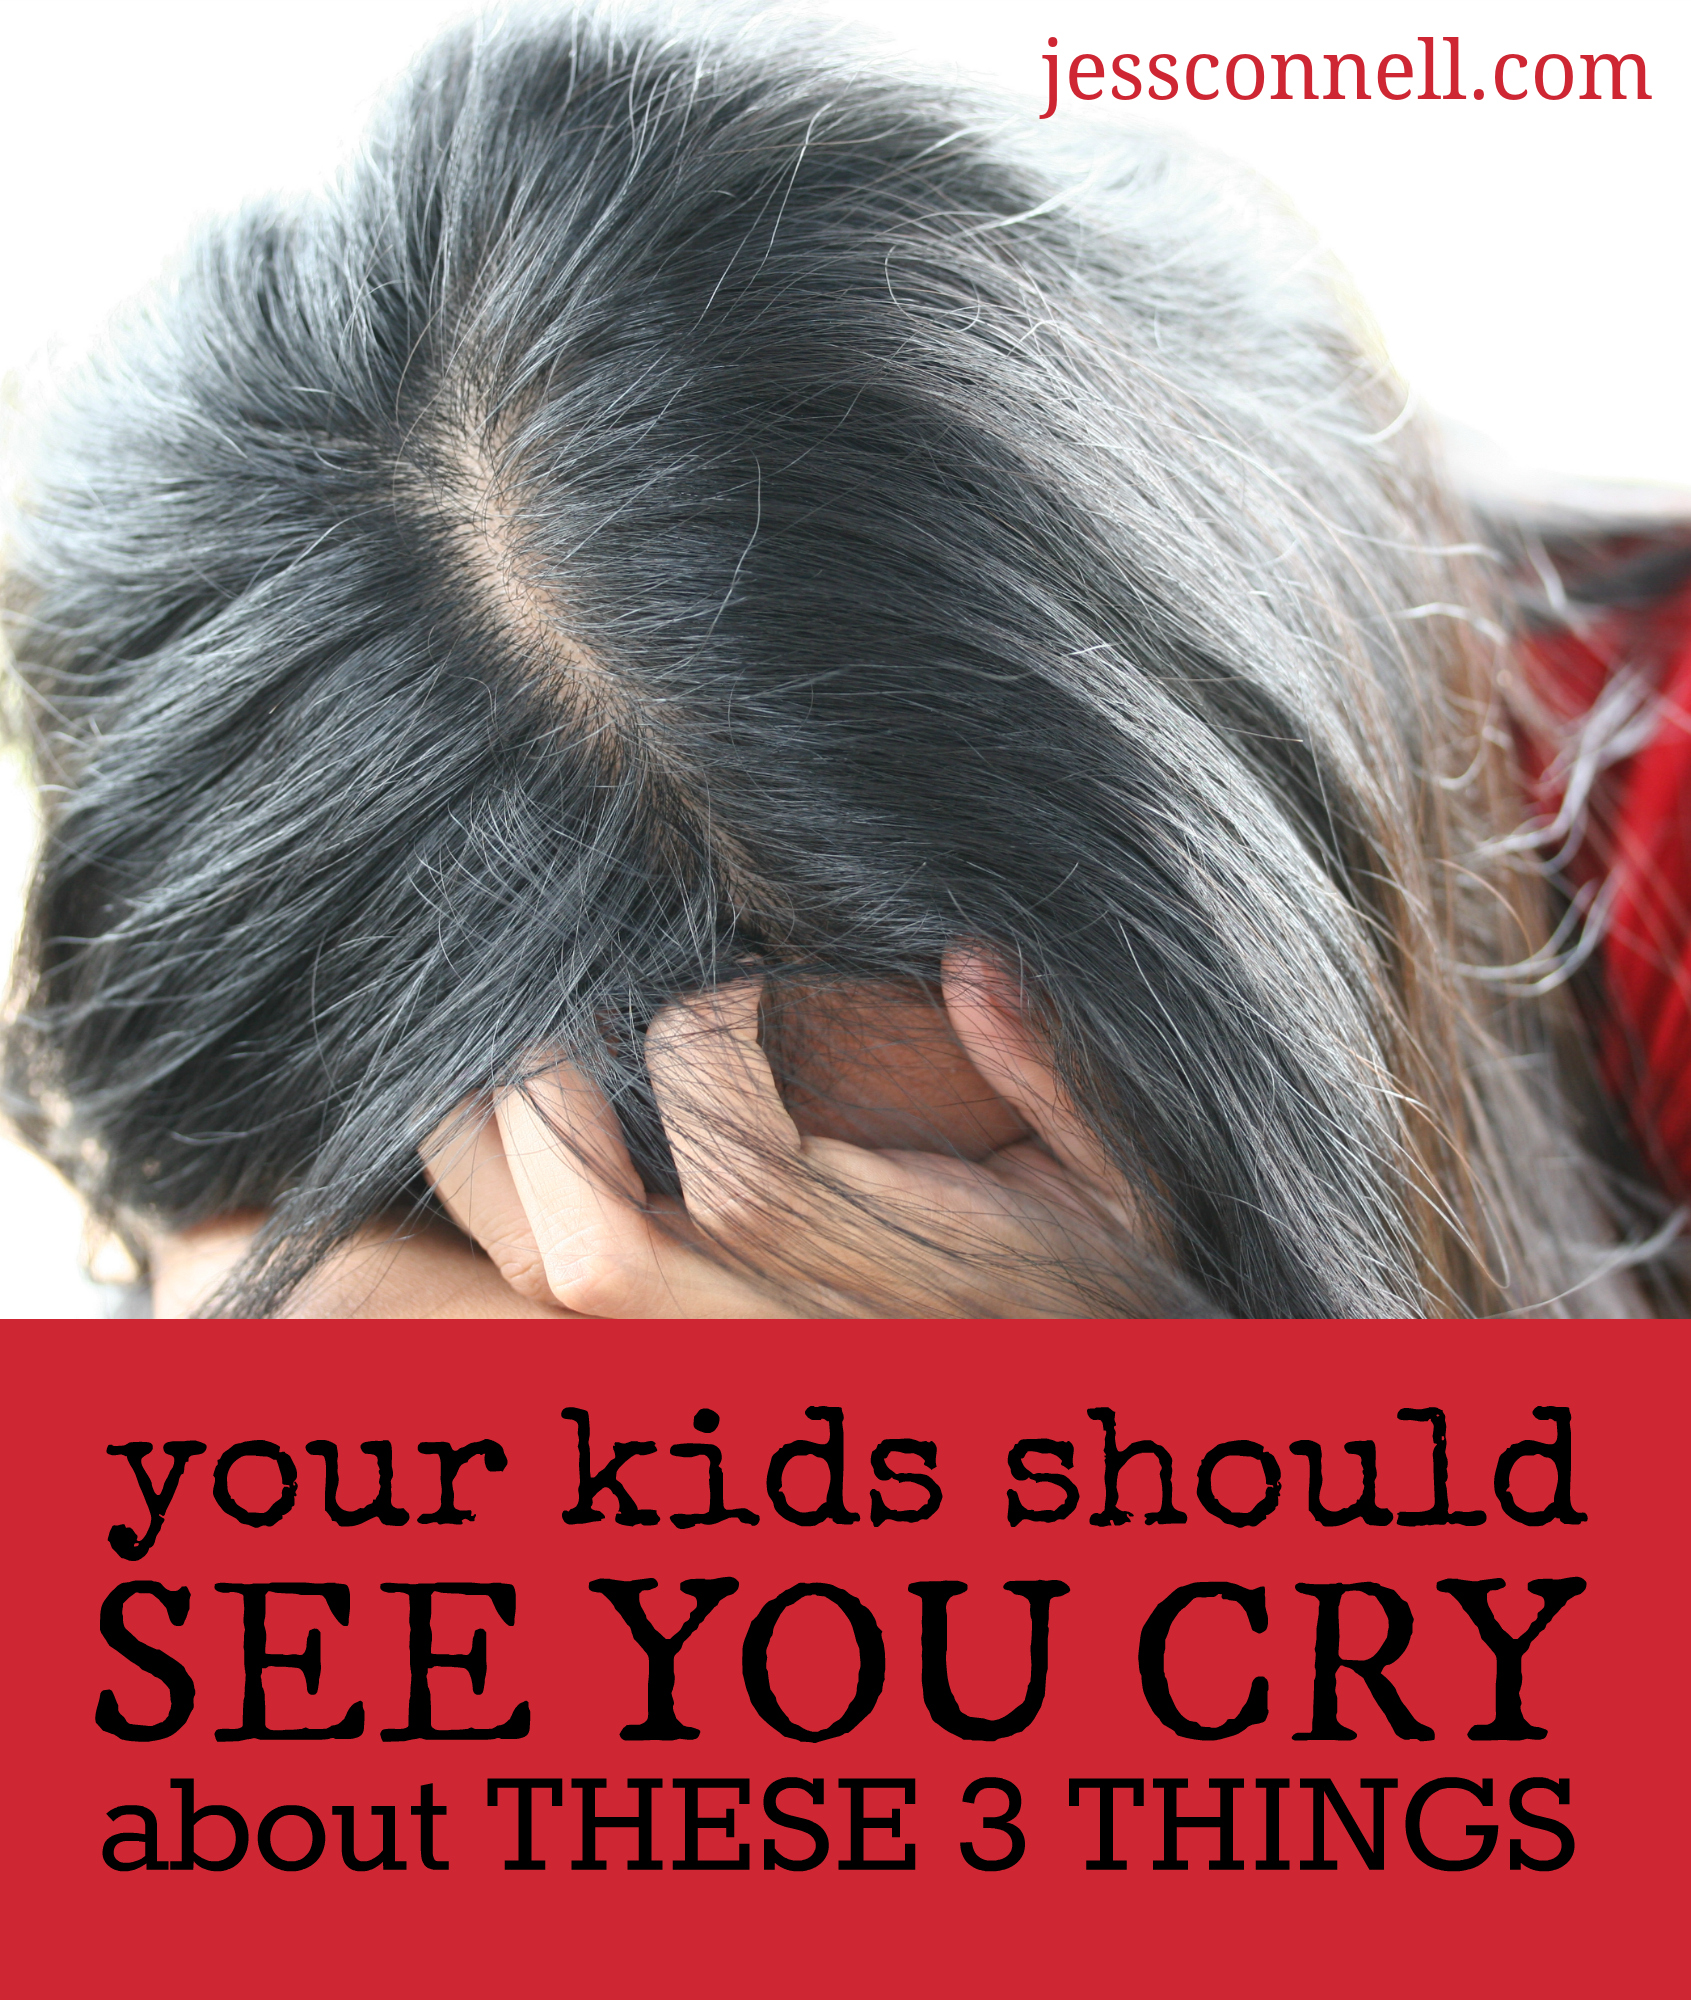 Your Kids Should SEE YOU CRY About These 3 Things // jessconnell.com